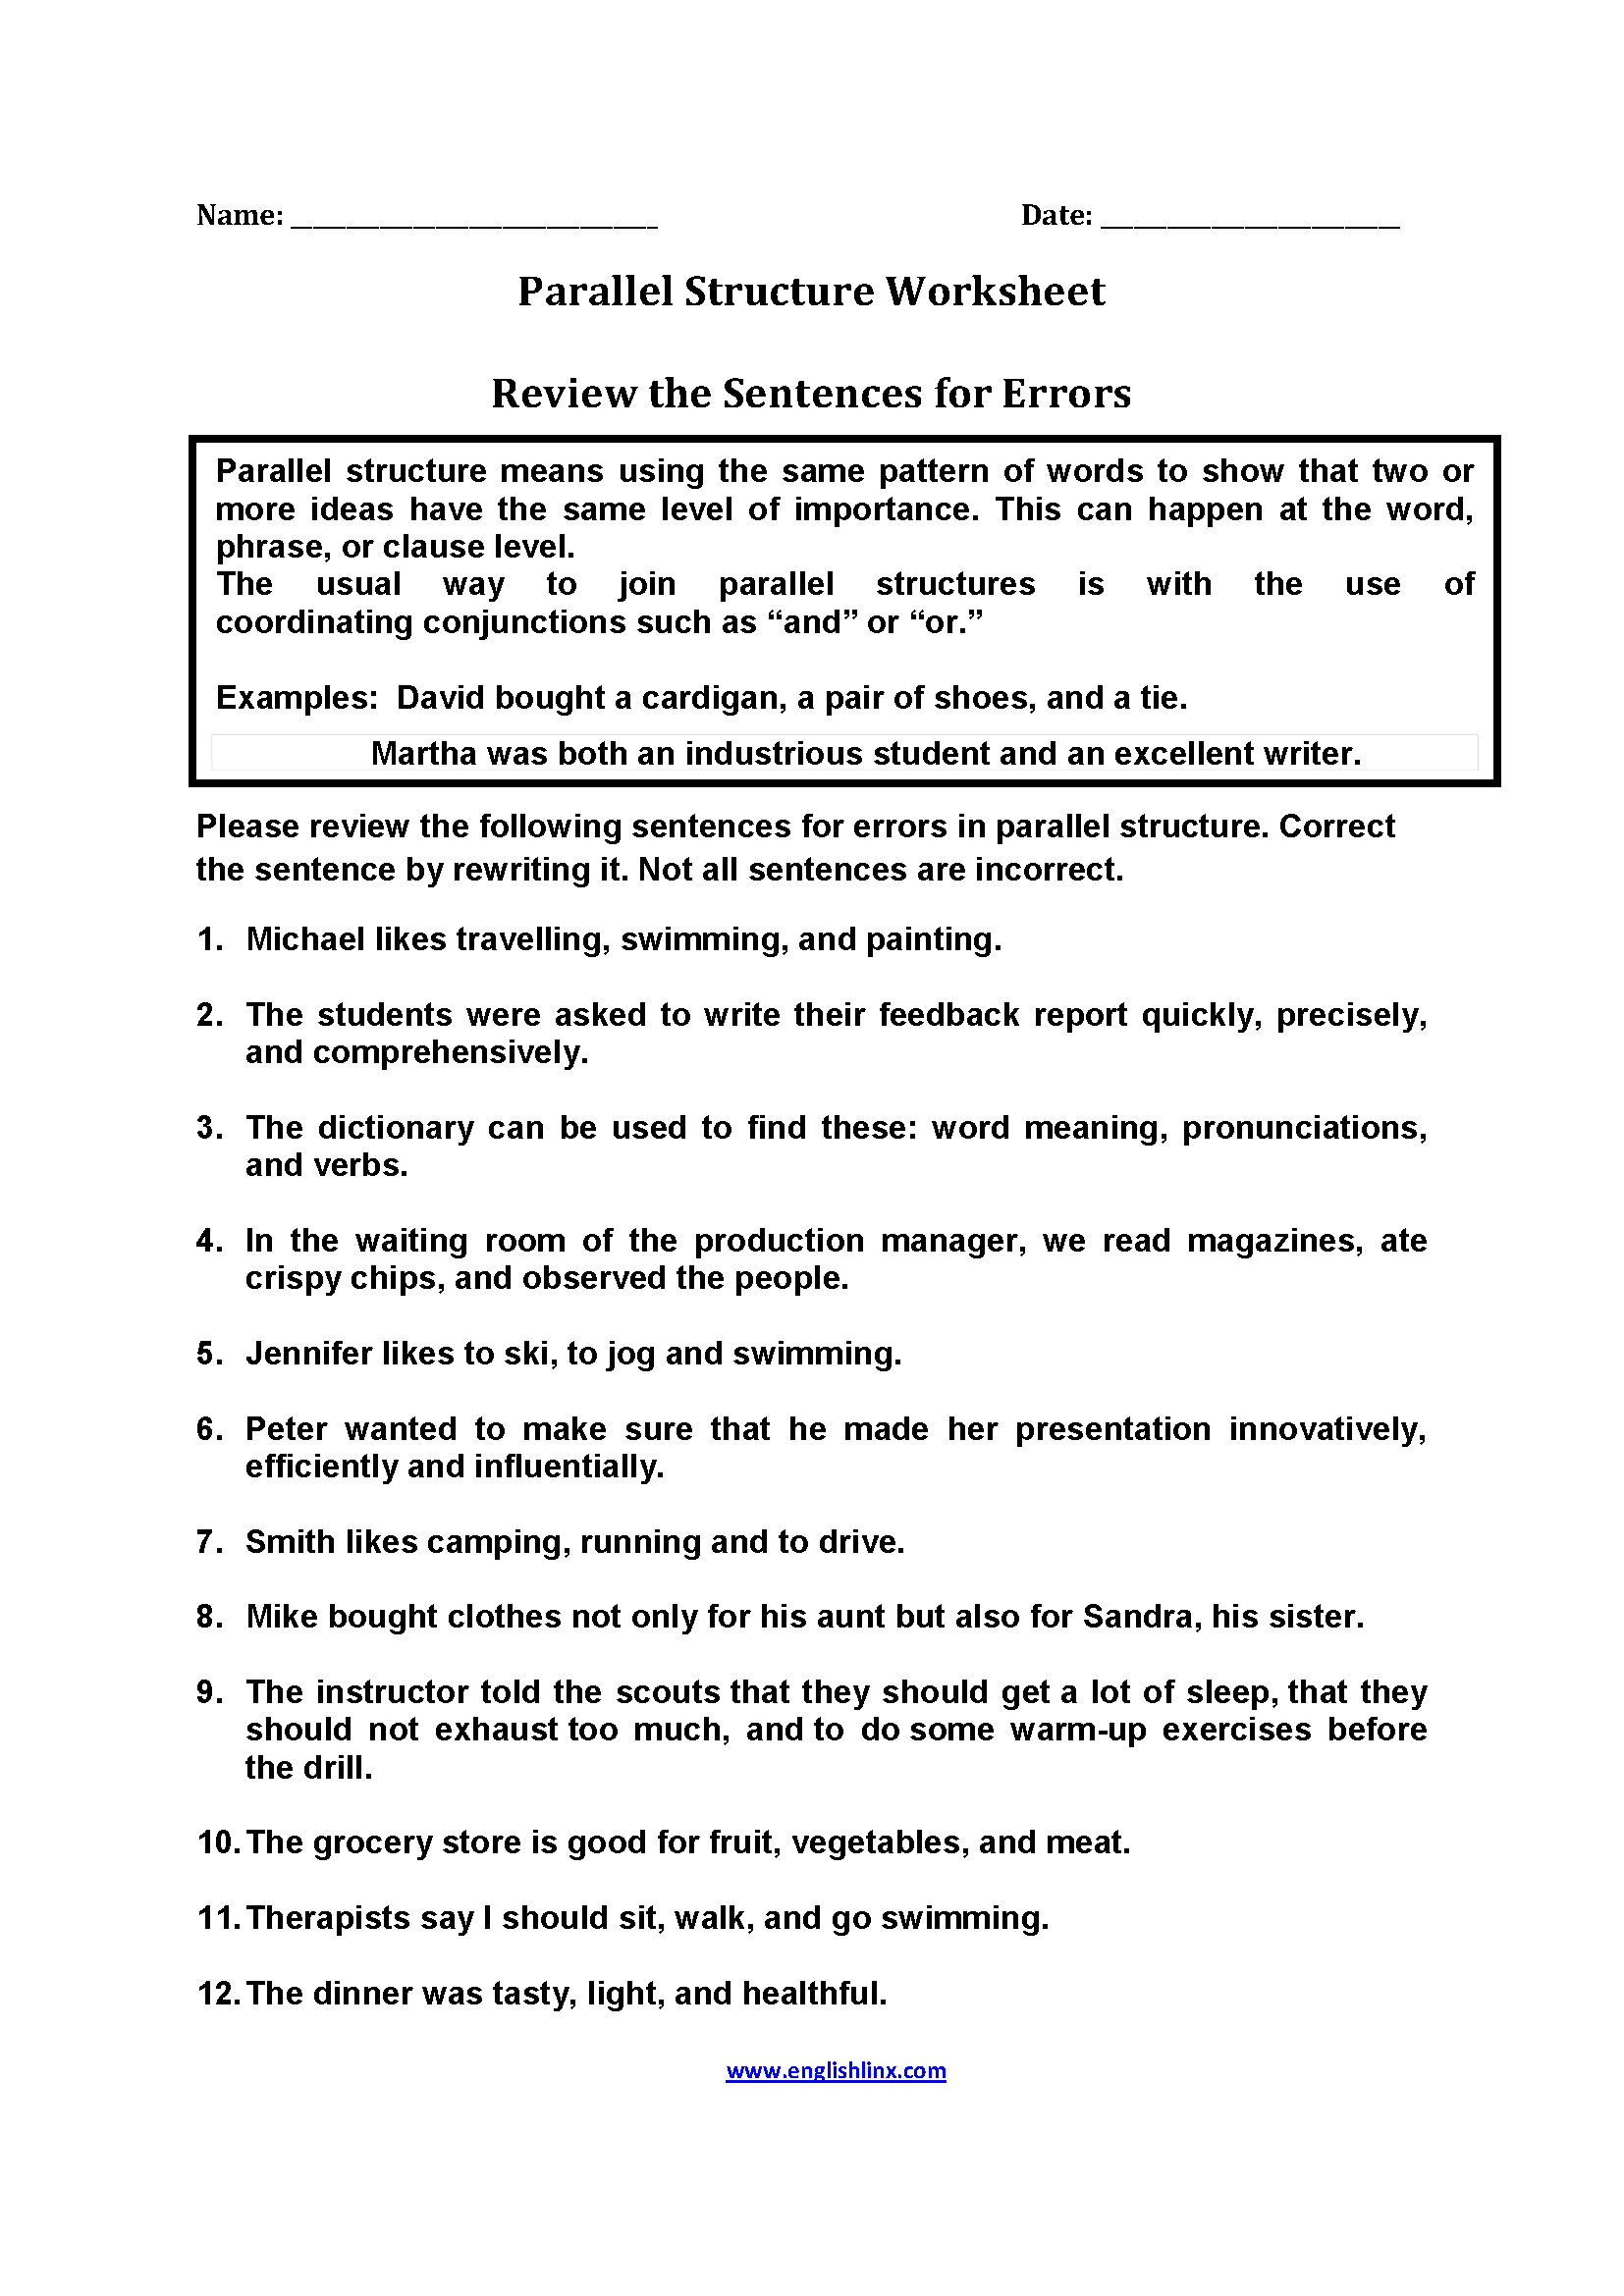 Review Sentences for Errors Parallel Structure Worksheets | Write ...